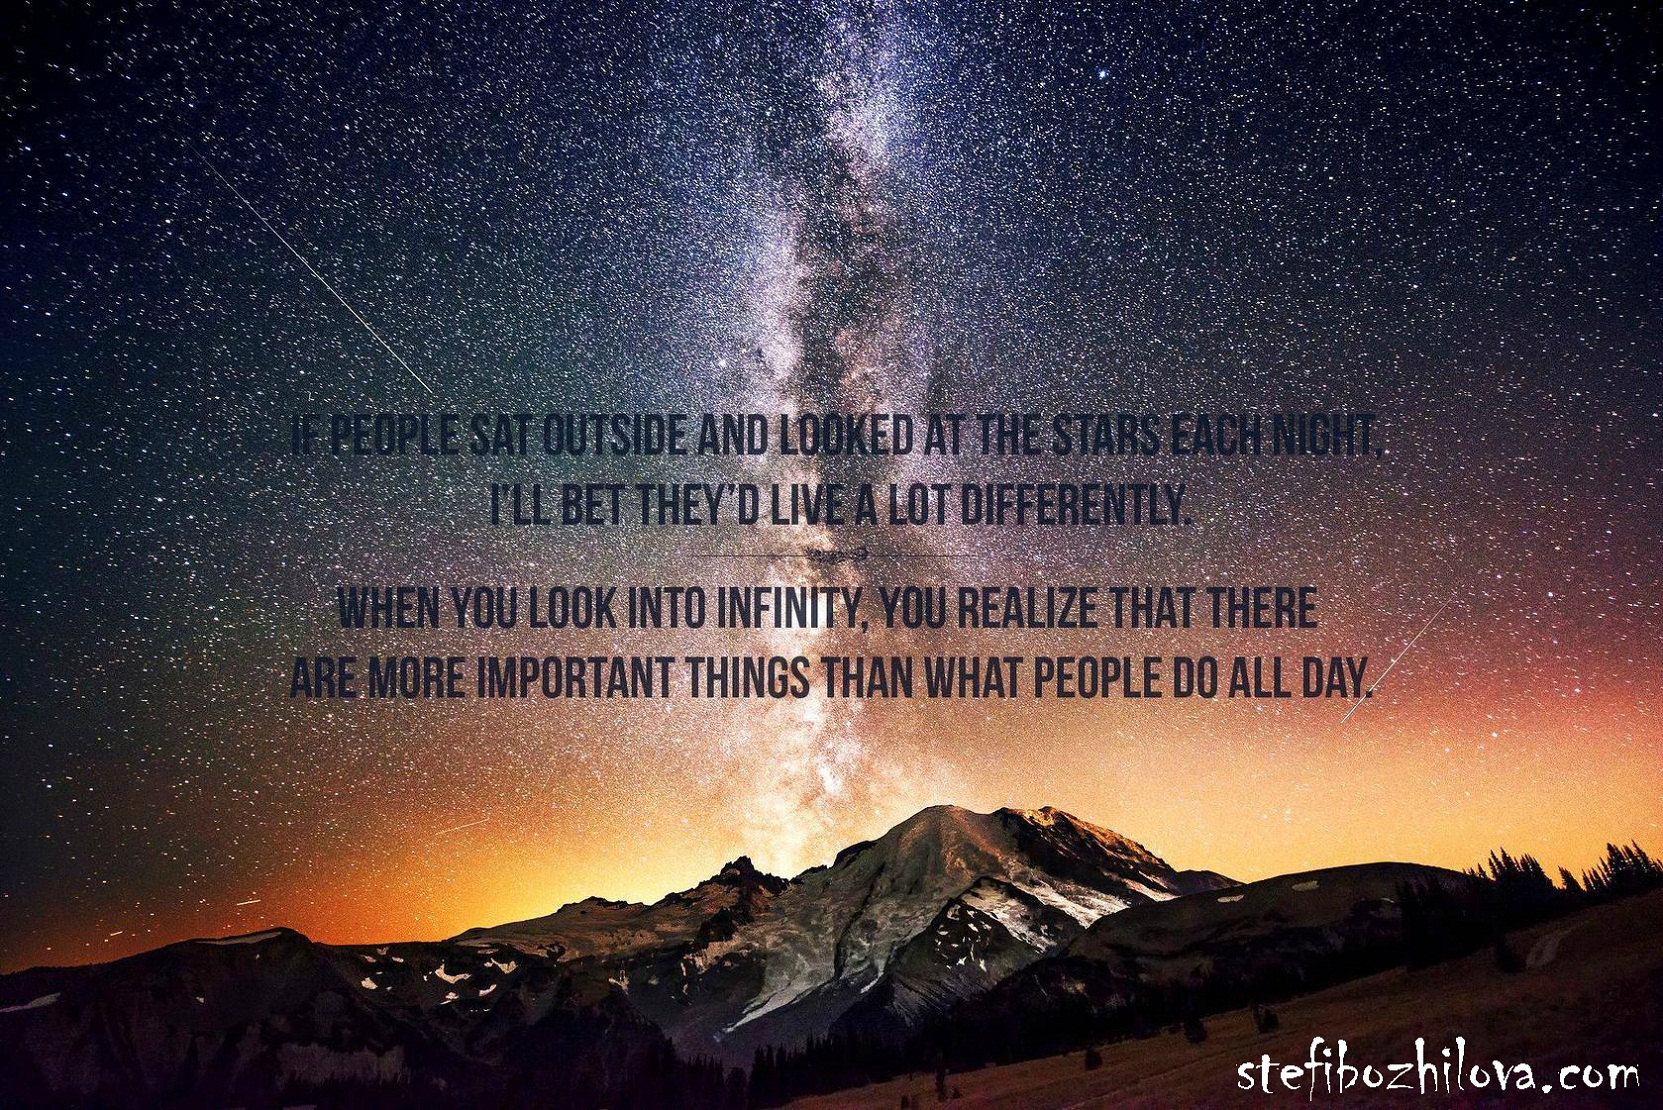 If people sat at night and watched the stars...